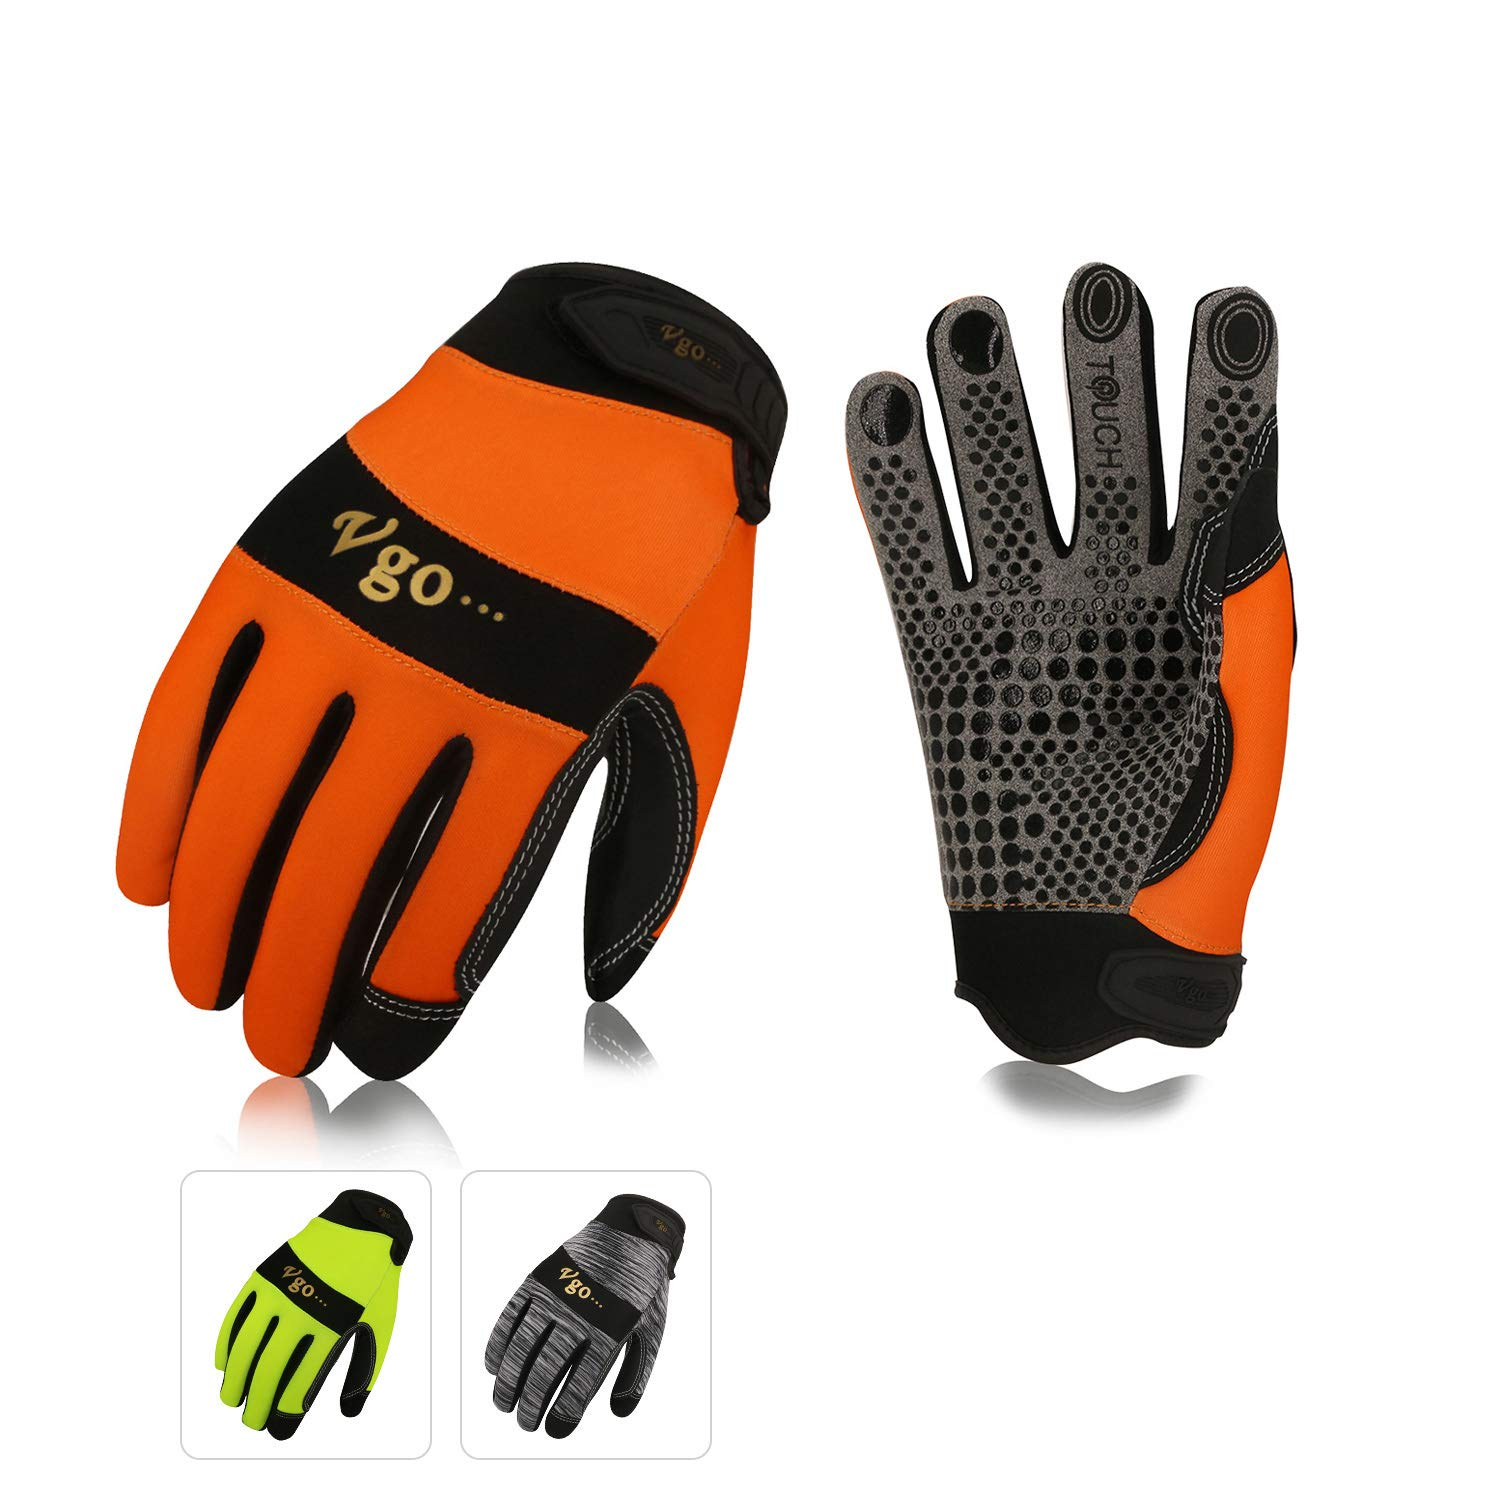 Vgo 3Pairs Work Glove, High Dexterity Synthetic Leather with Silicone for Antislip,Multipurpose(3 Color,Size L,SL7898)